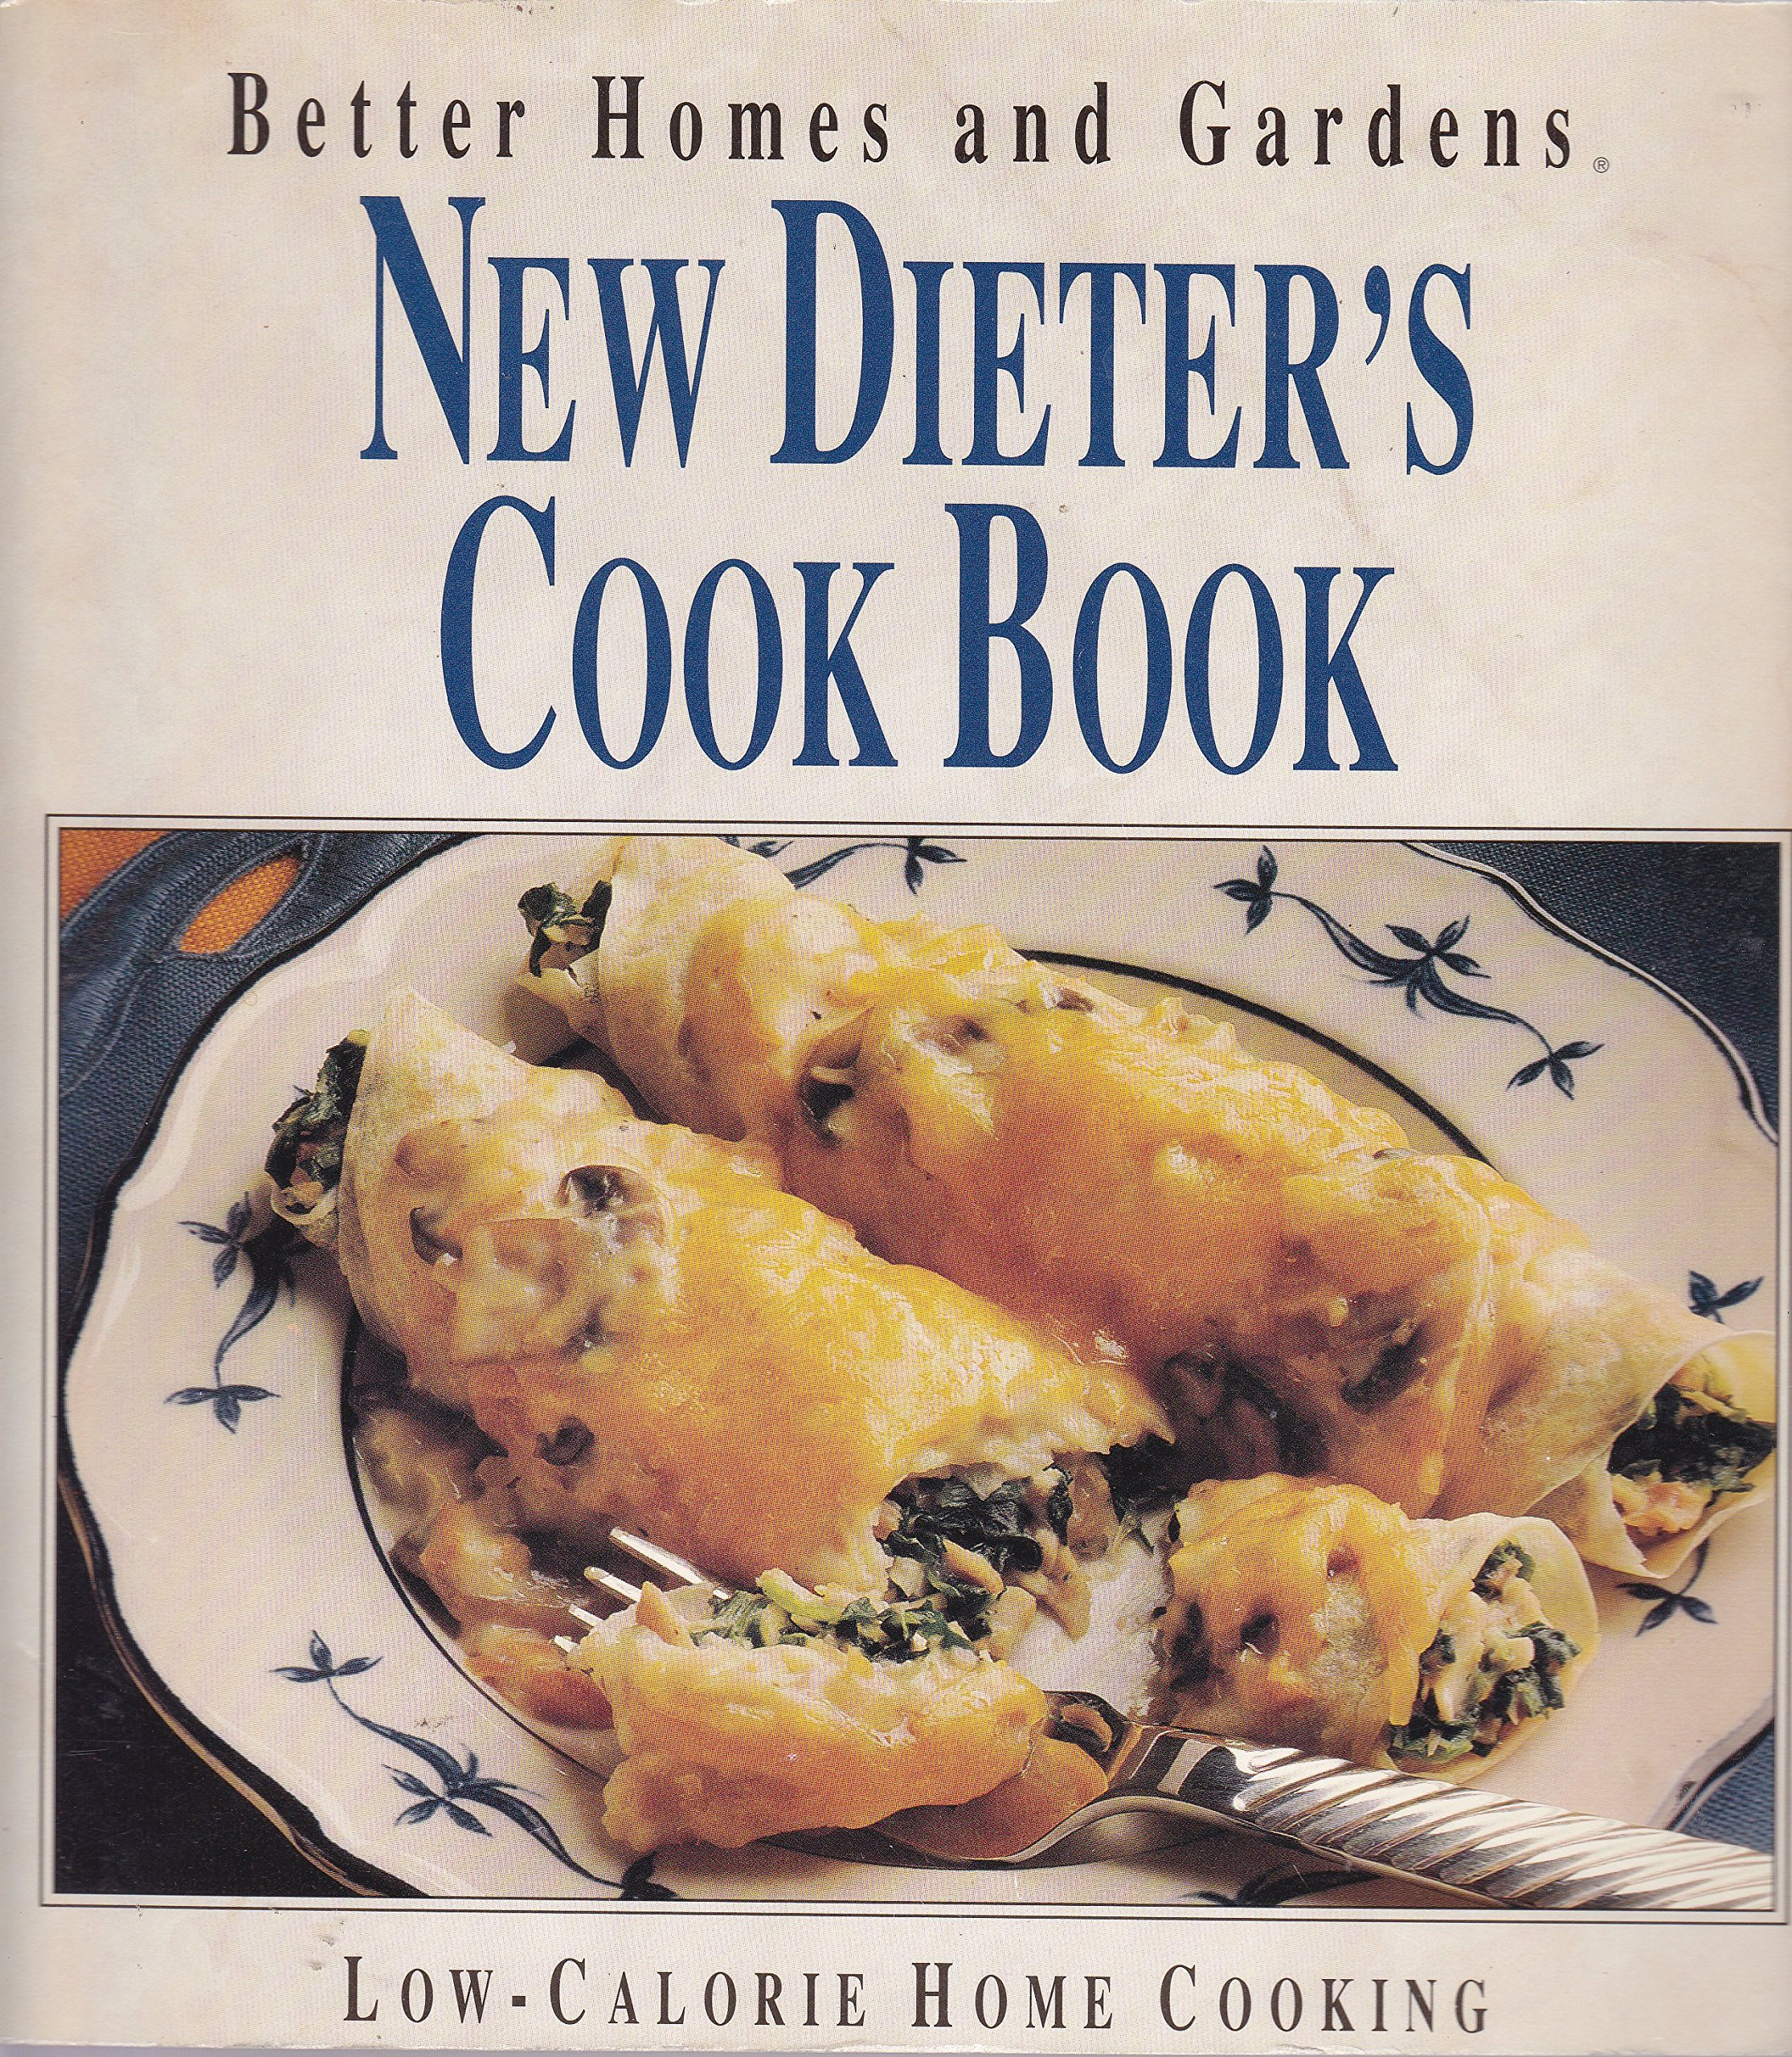 New Dieters Cook Book: Amazon.es: Better Homes & Gardens: Libros en idiomas extranjeros